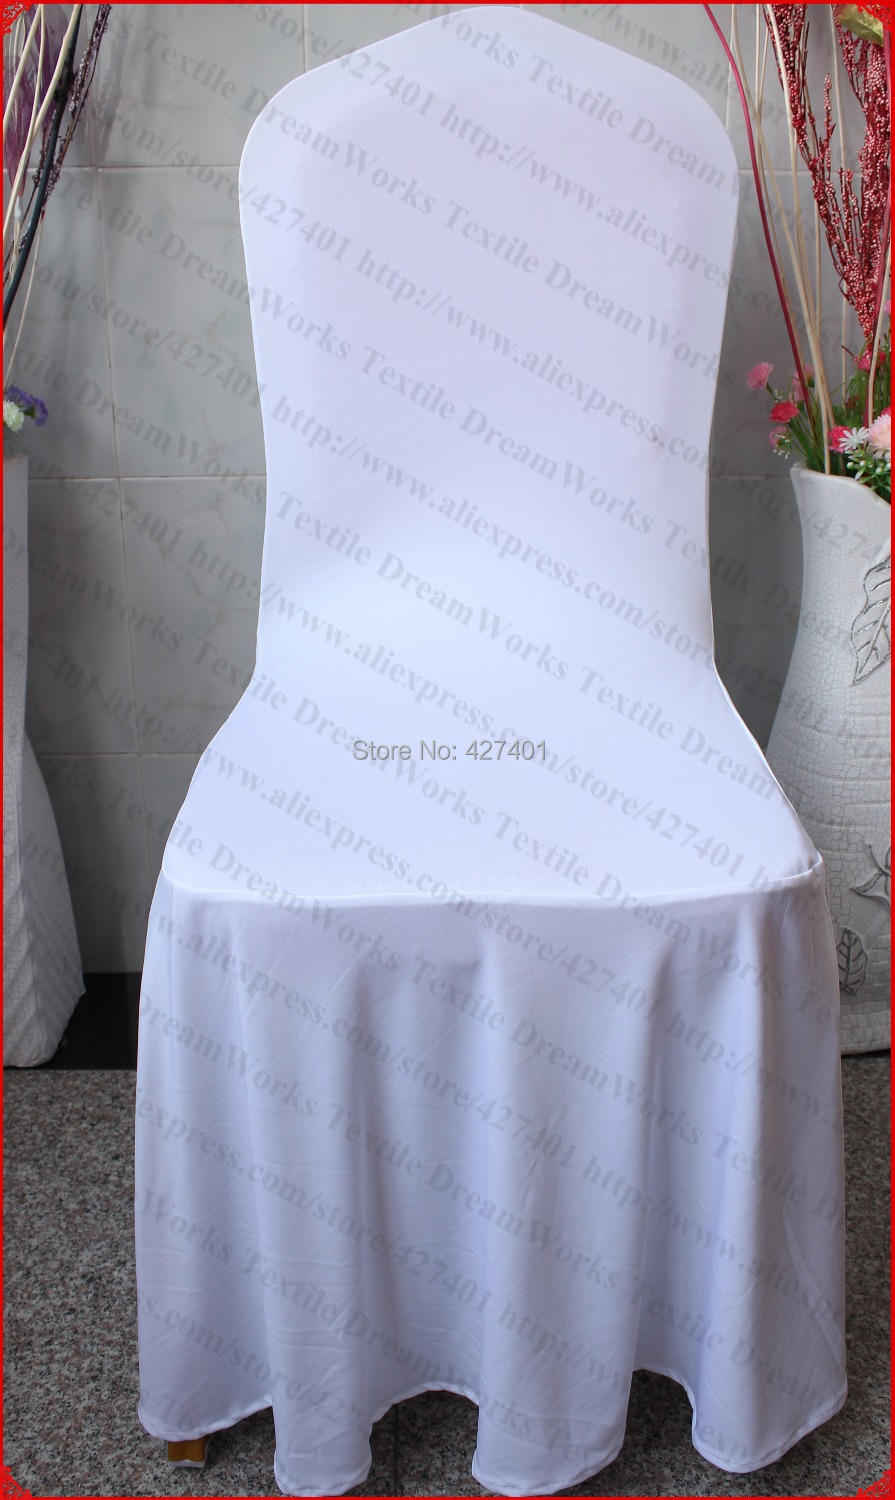 White Color <font><b>Elegant</b></font> Pleated Swag Spandex Chair Cover/Lycra Chair Cover/Backdrop For Wedding Party Hotel Banquet <font><b>Home</b></font> <font><b>Decorations</b></font>